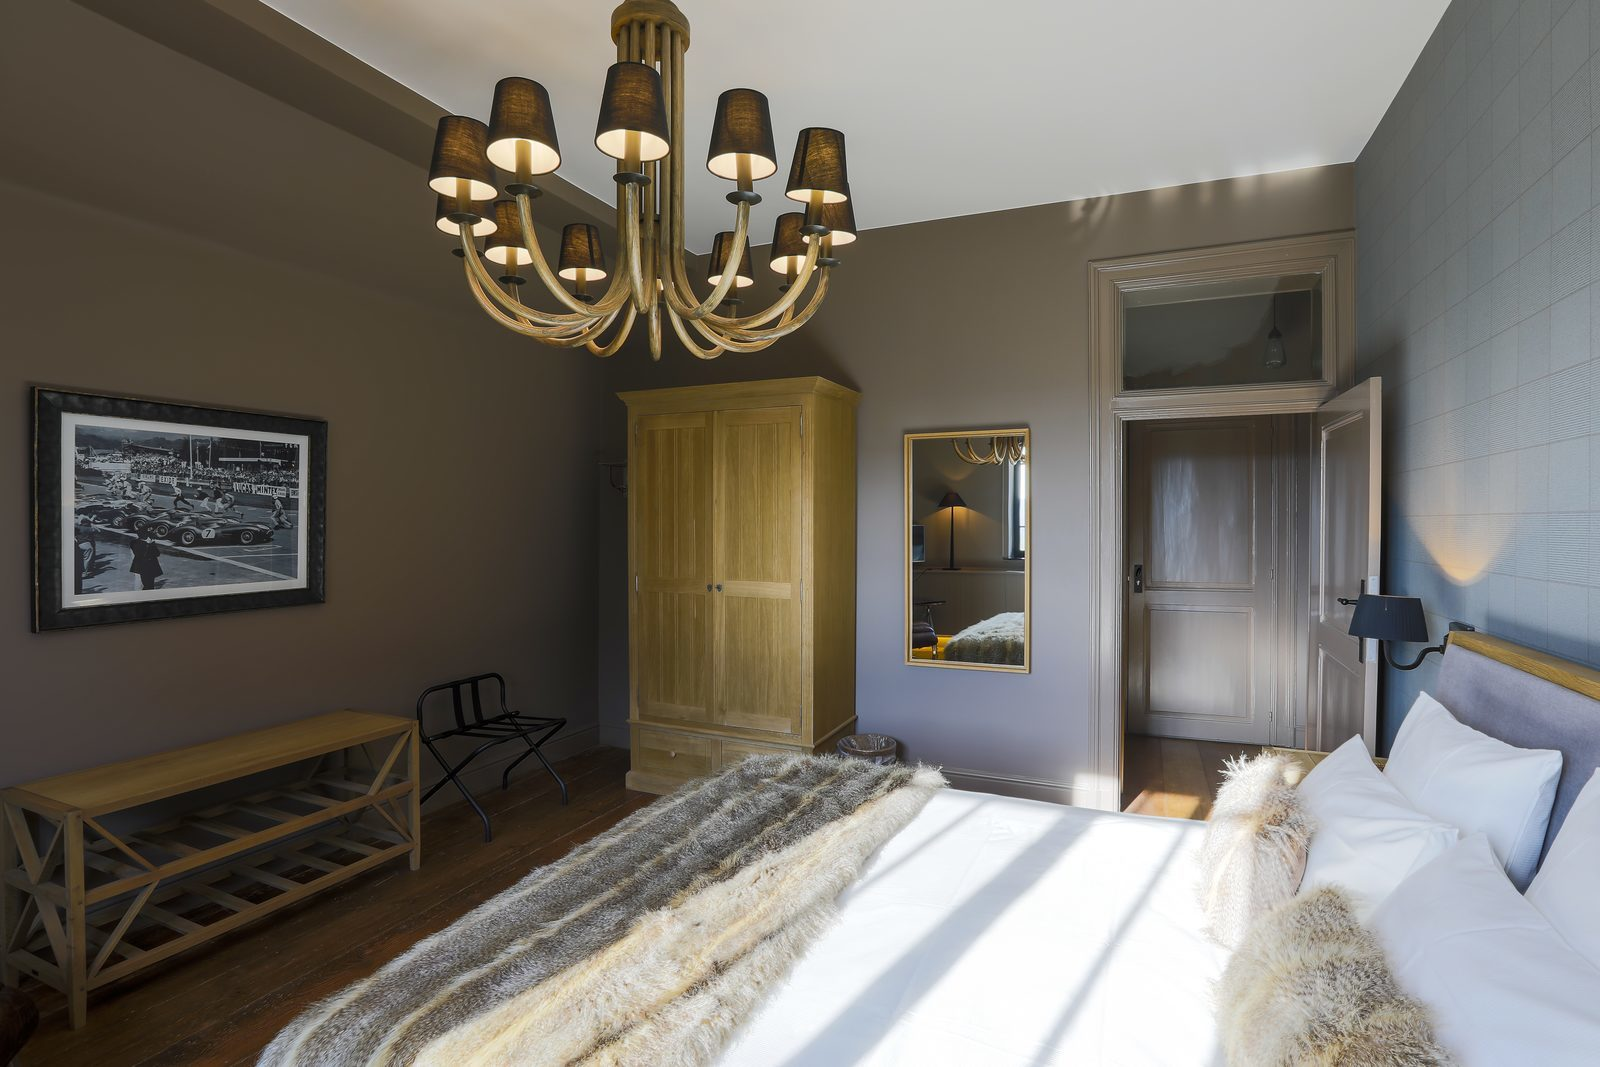 10chambres luxueuses